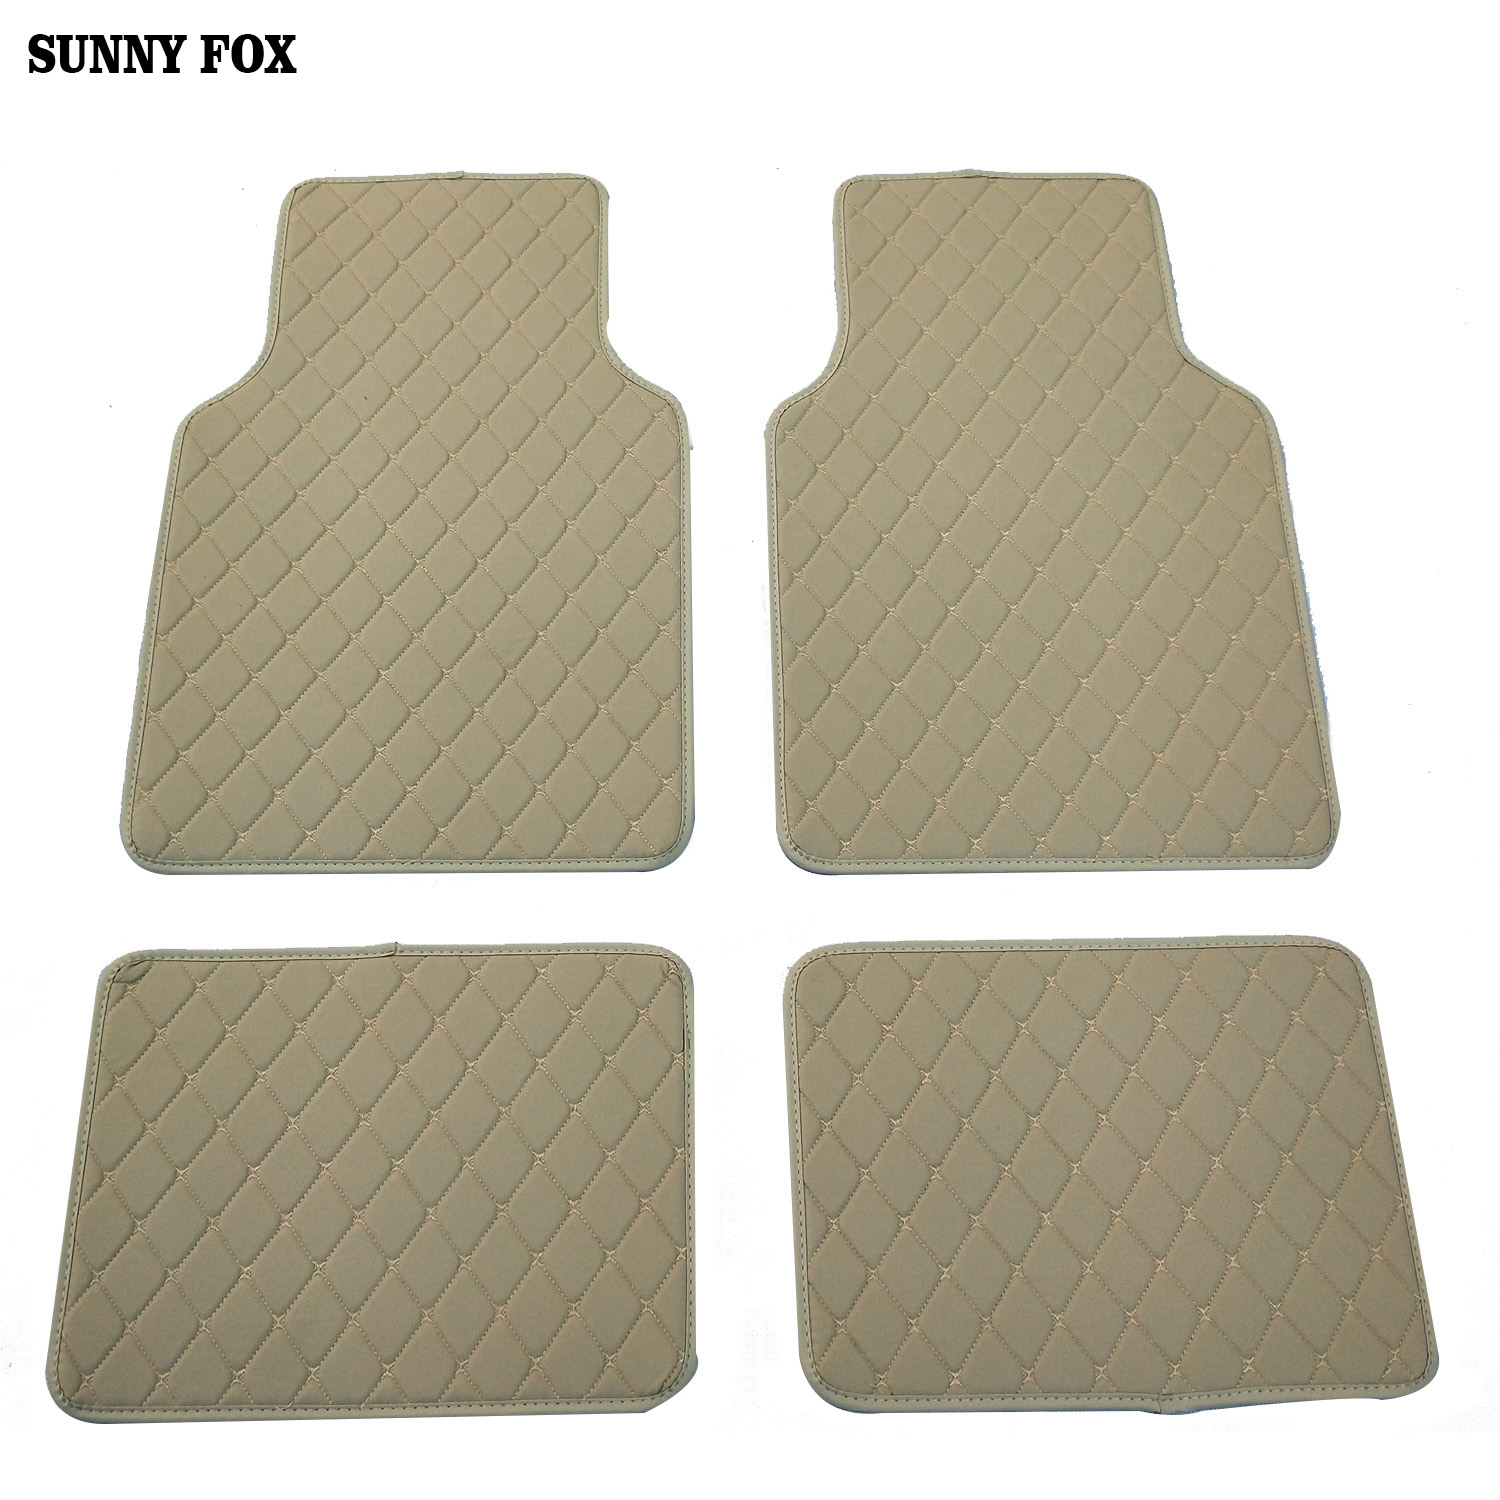 Universal Car floor mats specially for <font><b>Mercedes</b></font> Benz S class W222 W221 S400 <font><b>S500</b></font> S600 L luxury car styling rugs carpet liners image